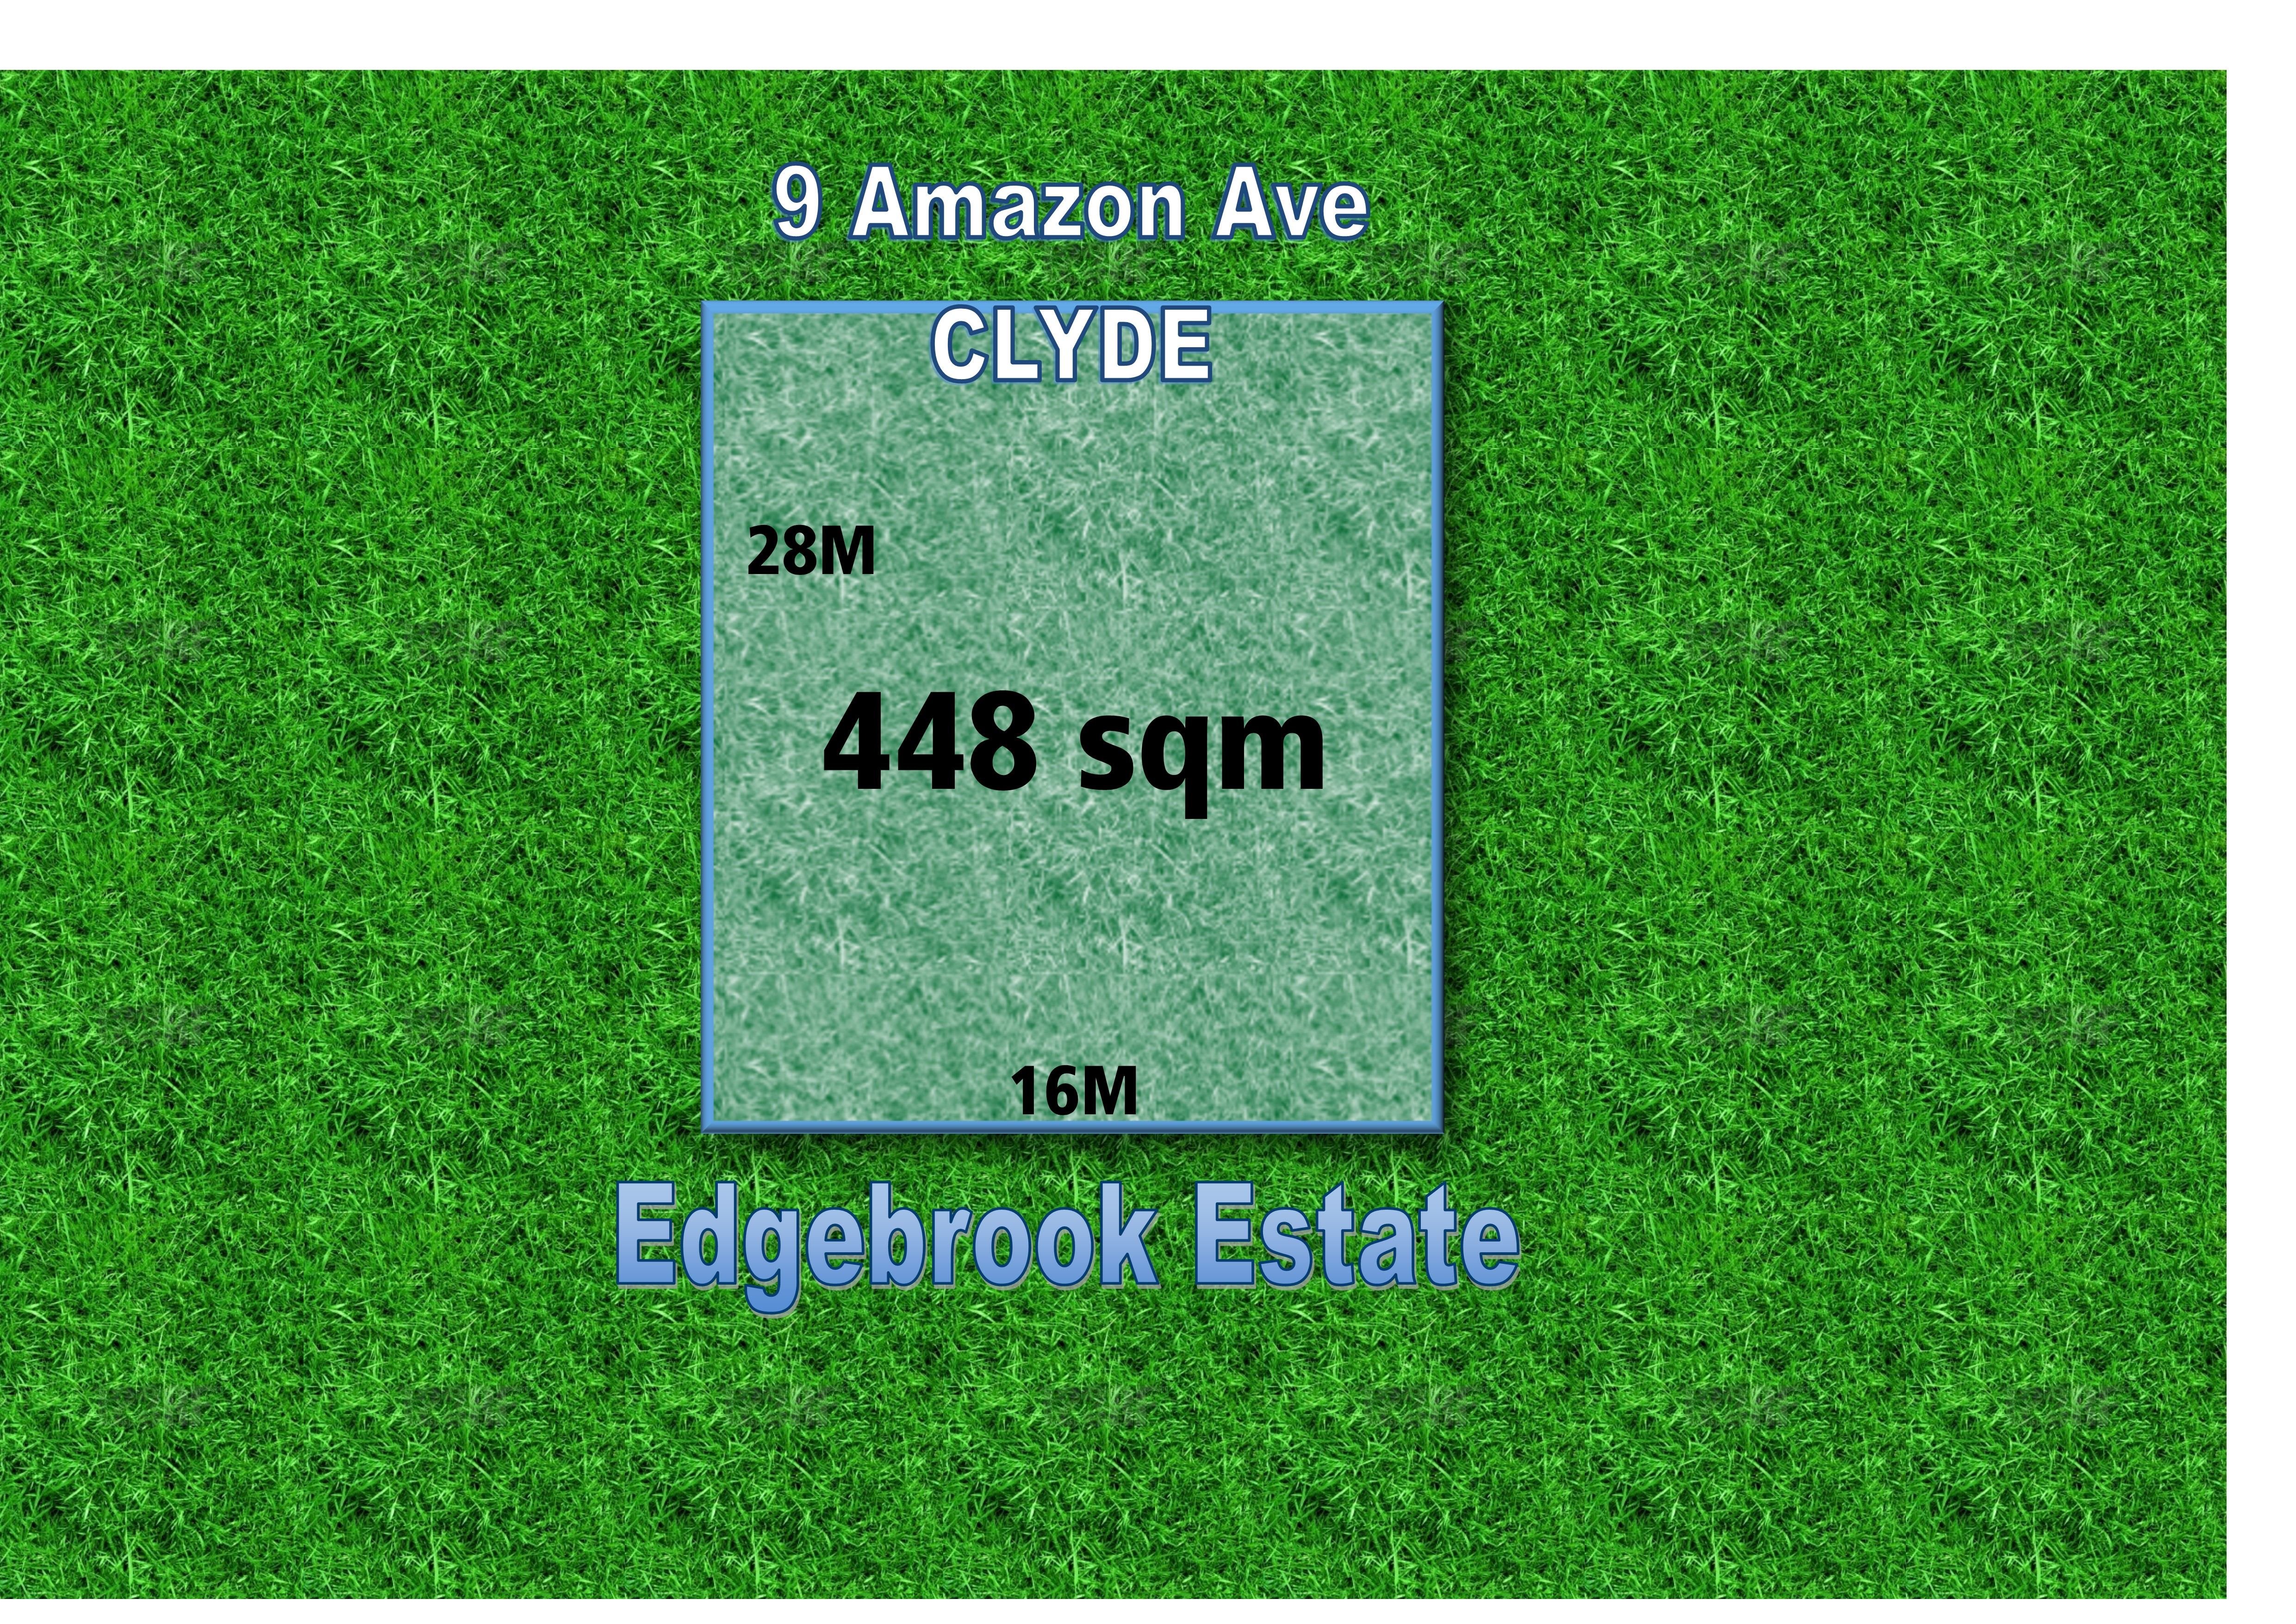 Lot 139/9 Amazon Ave CLYDE